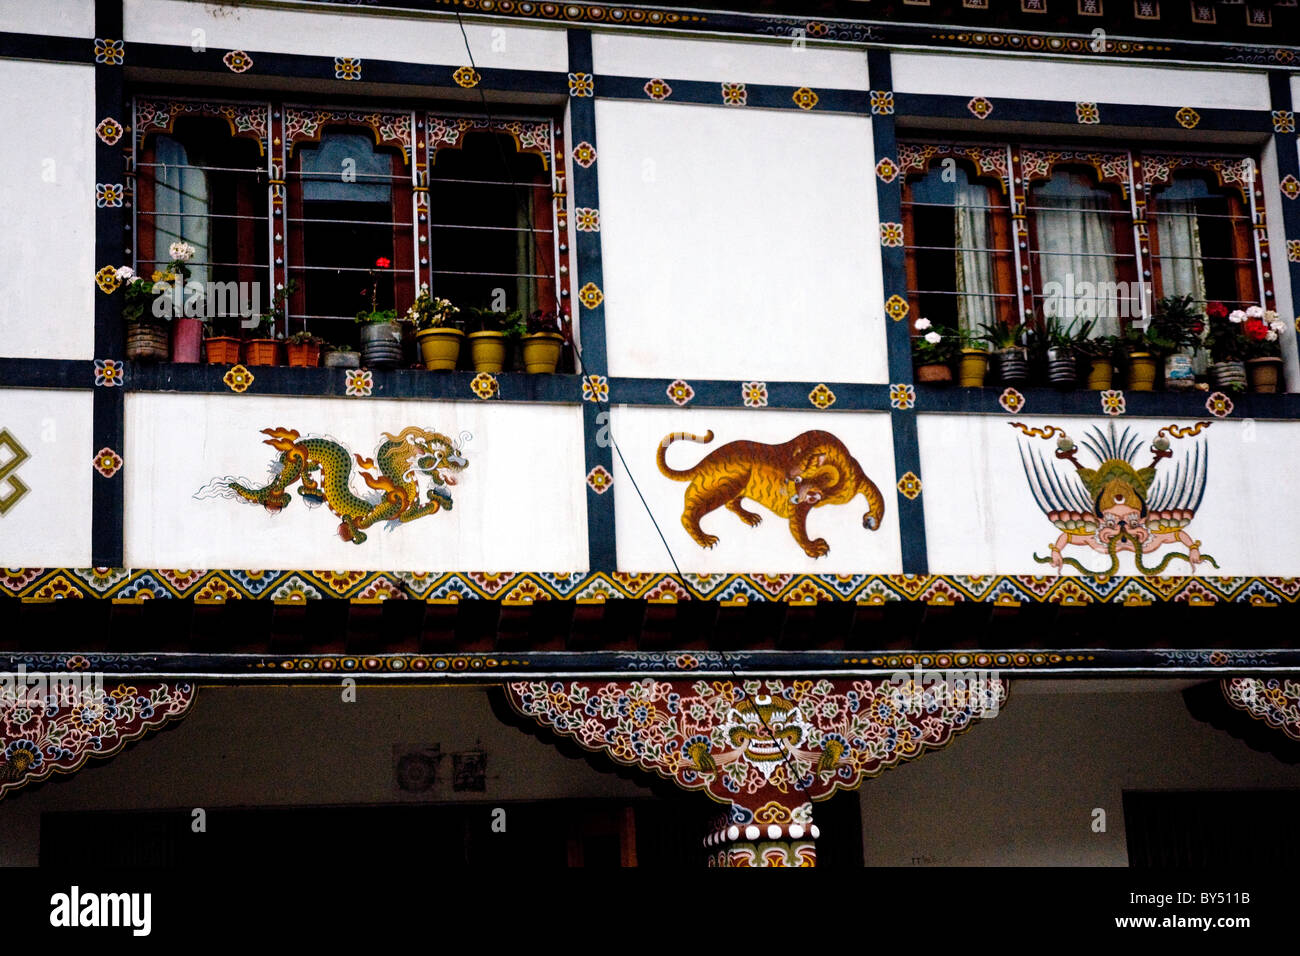 Colorful artwork in the typical Buddhist style adorns a traditional building in Paro, Bhutan - Stock Image